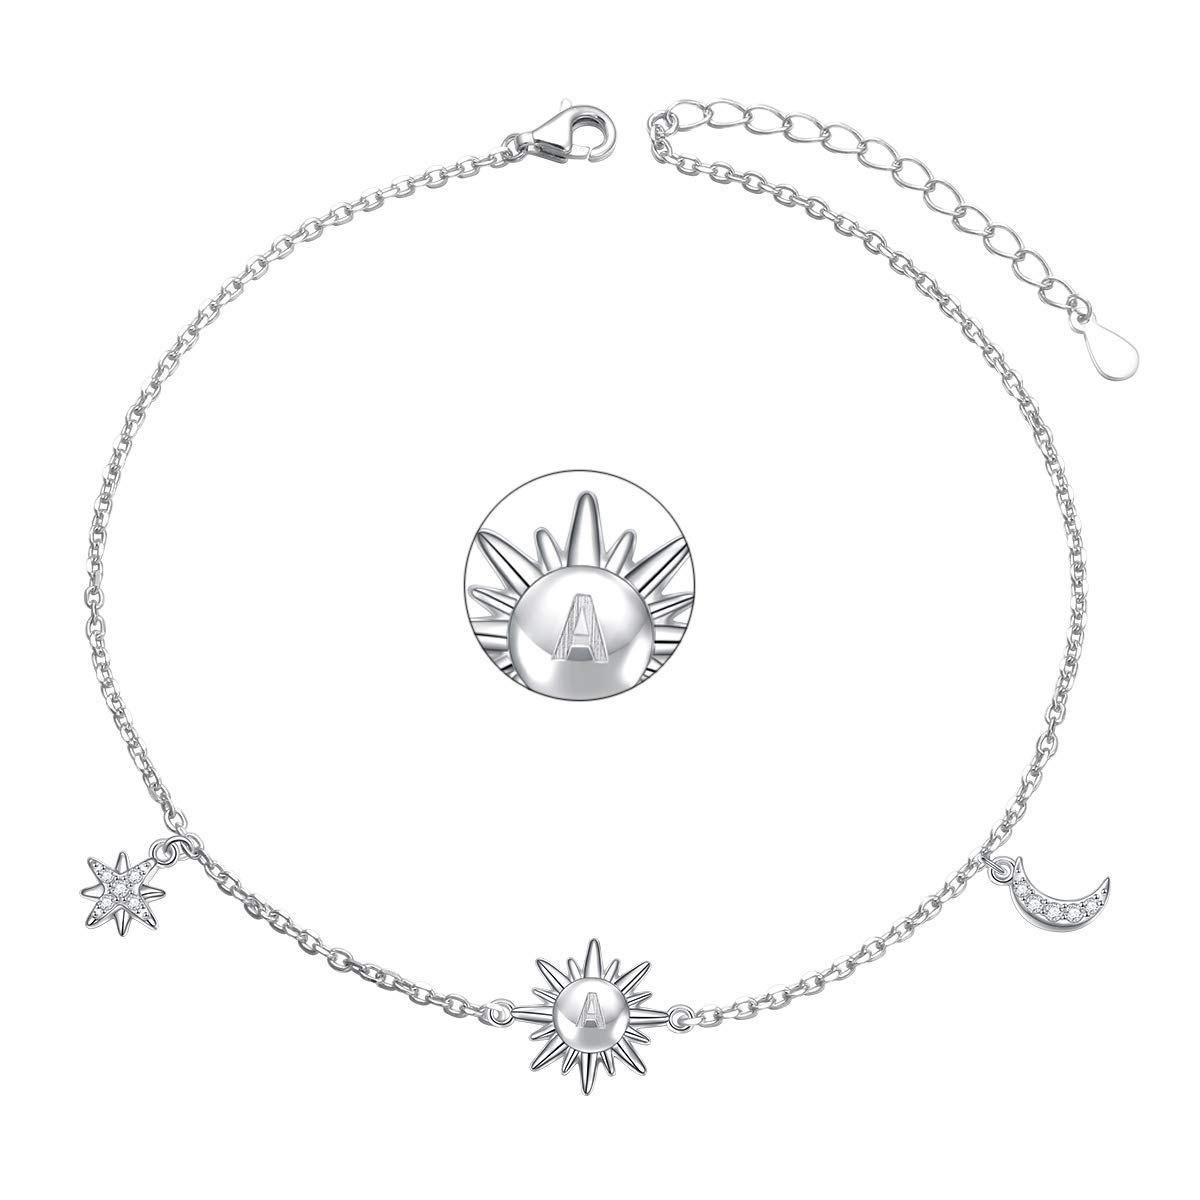 Sterling Silver Initial Letter Script Name Alphabet A Star Moon and Sun Foot Bracelet Anklet for Women Girls 9+1.5 inches